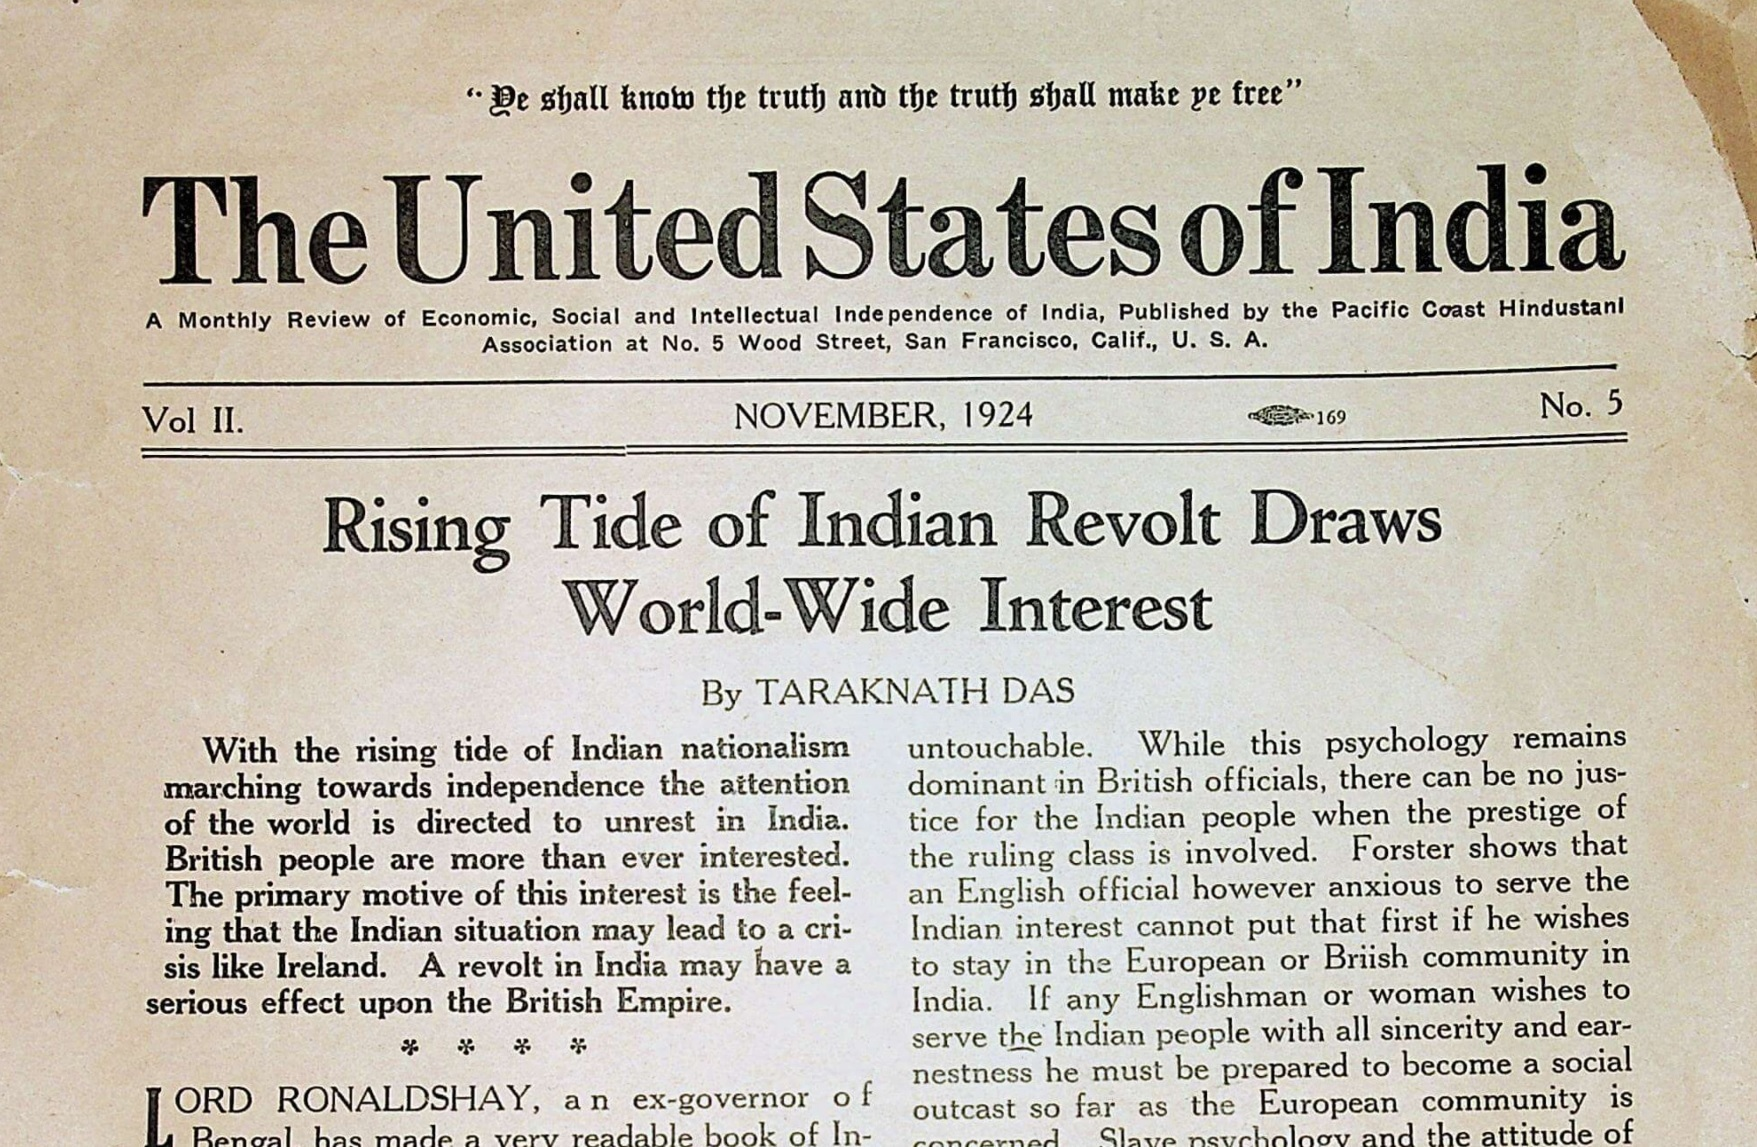 The Ghadar movement, based on the US west coast, published a newspaper printing revolutionary news and poetry from across the world, and it inspired leaders of the Indian independence movement. Photo credit: Consulate General of India, San Francisco